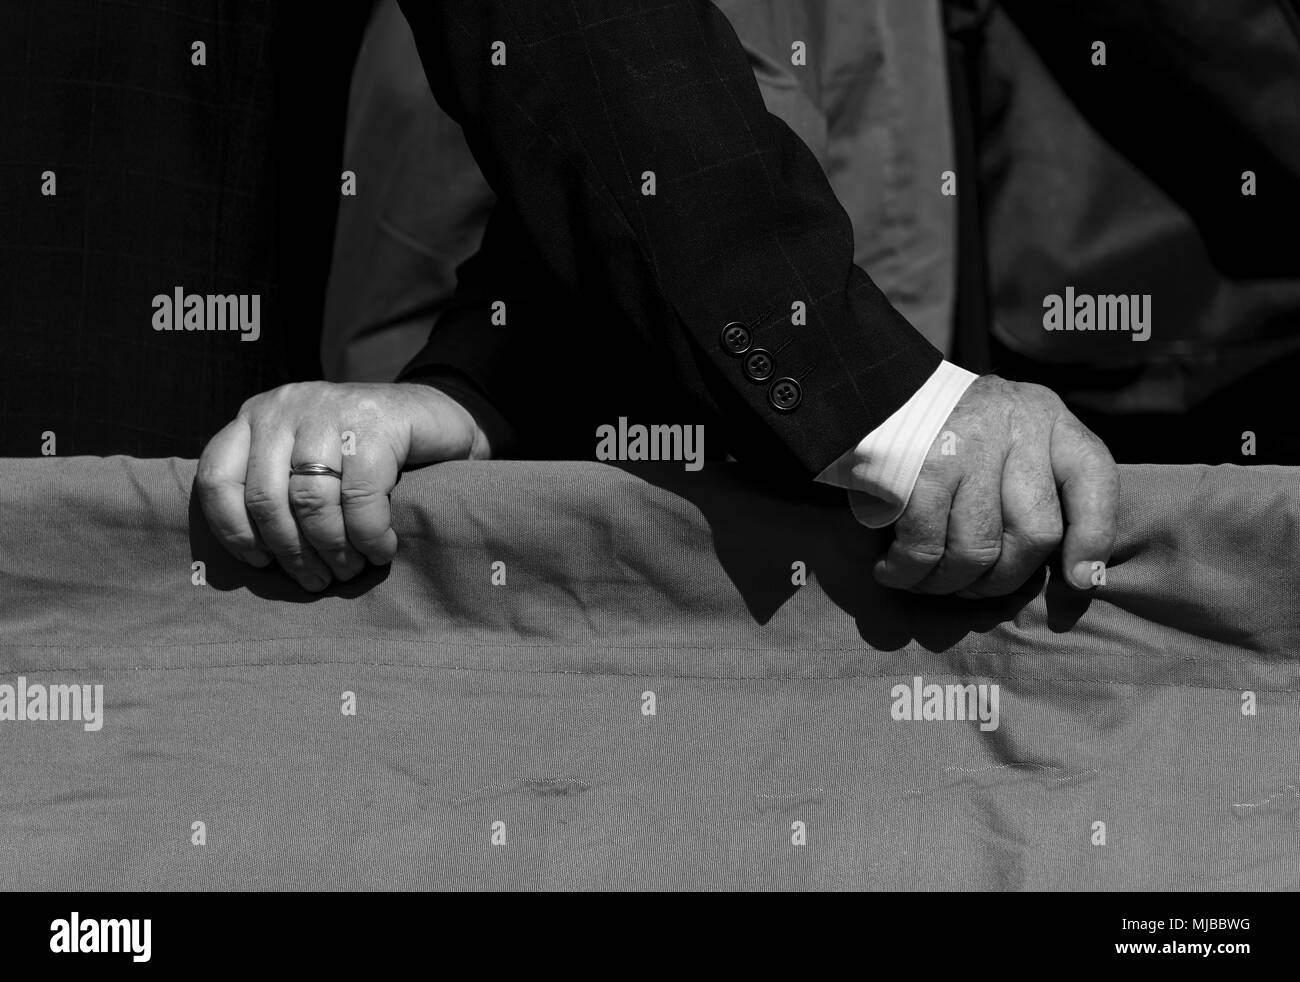 hands of men talking to each other - Stock Image